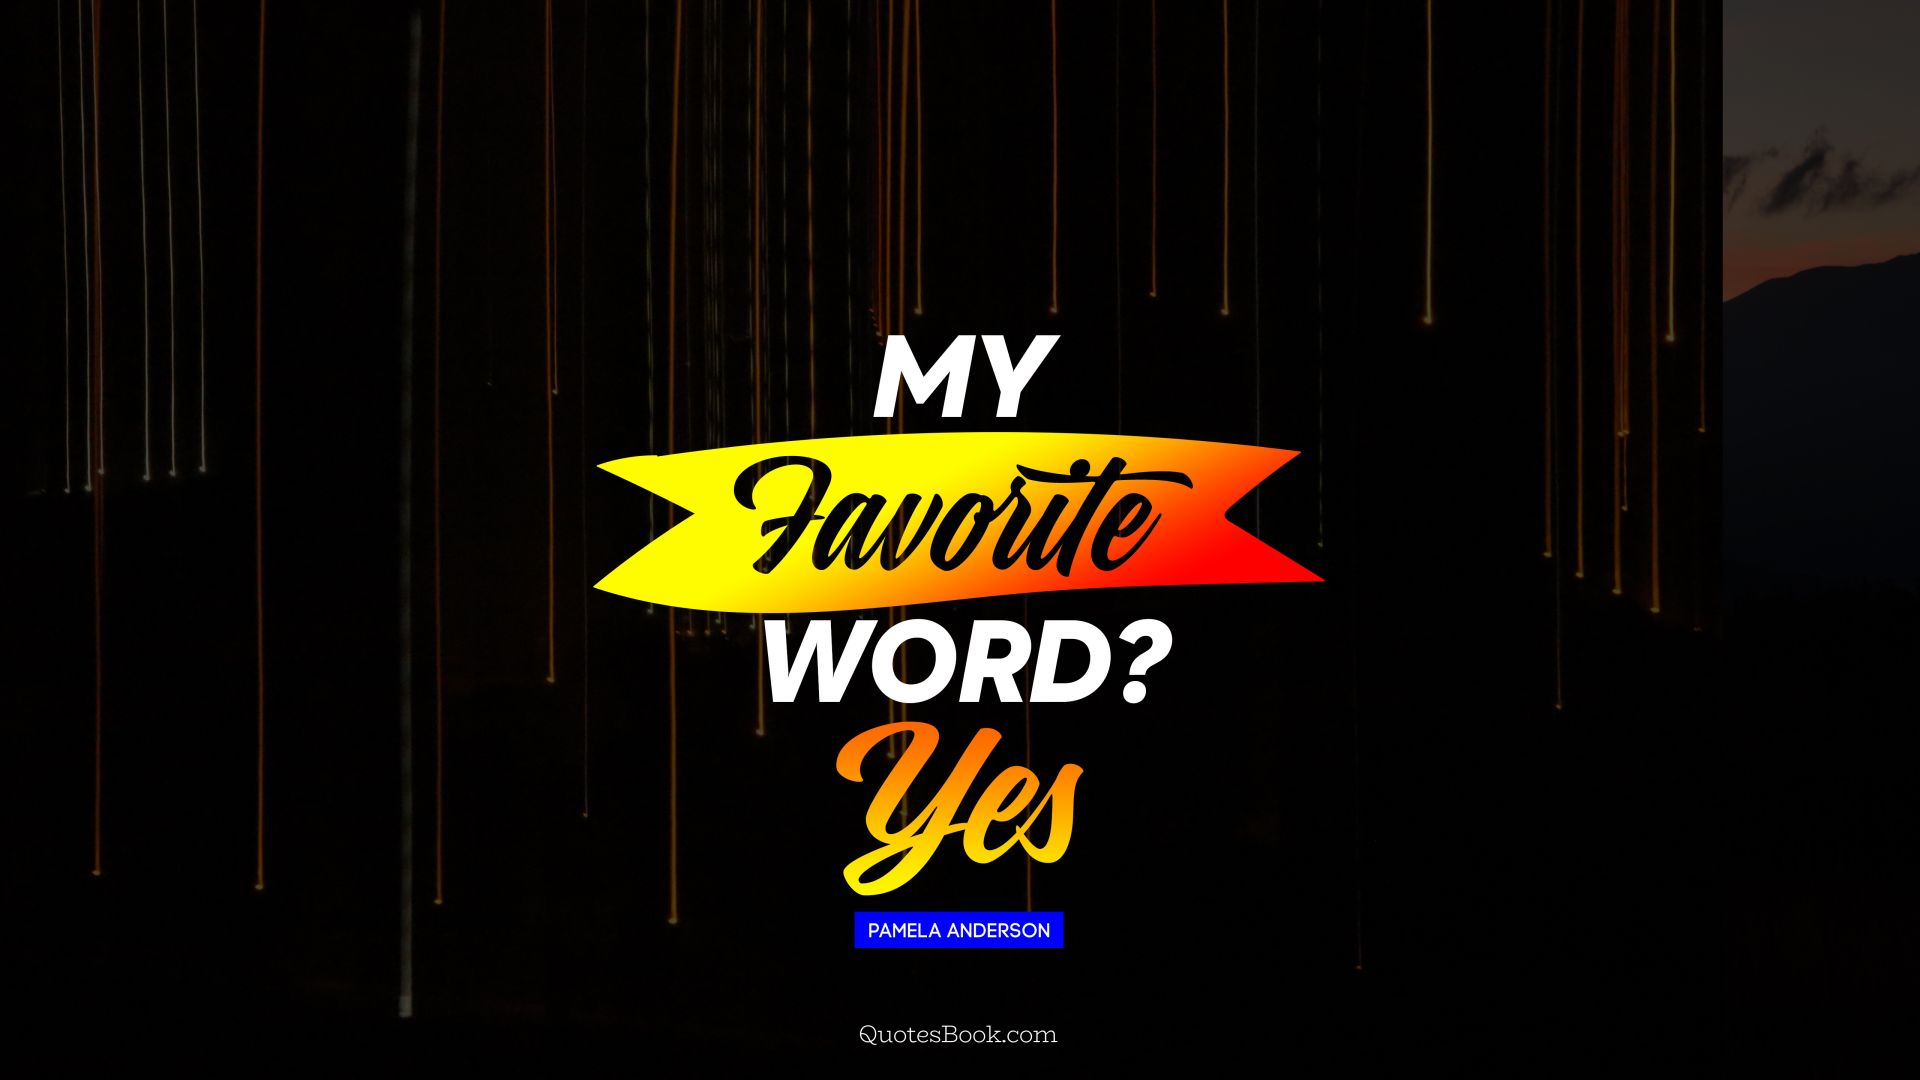 My favorite word? Yes. - Quote by Pamela Anderson